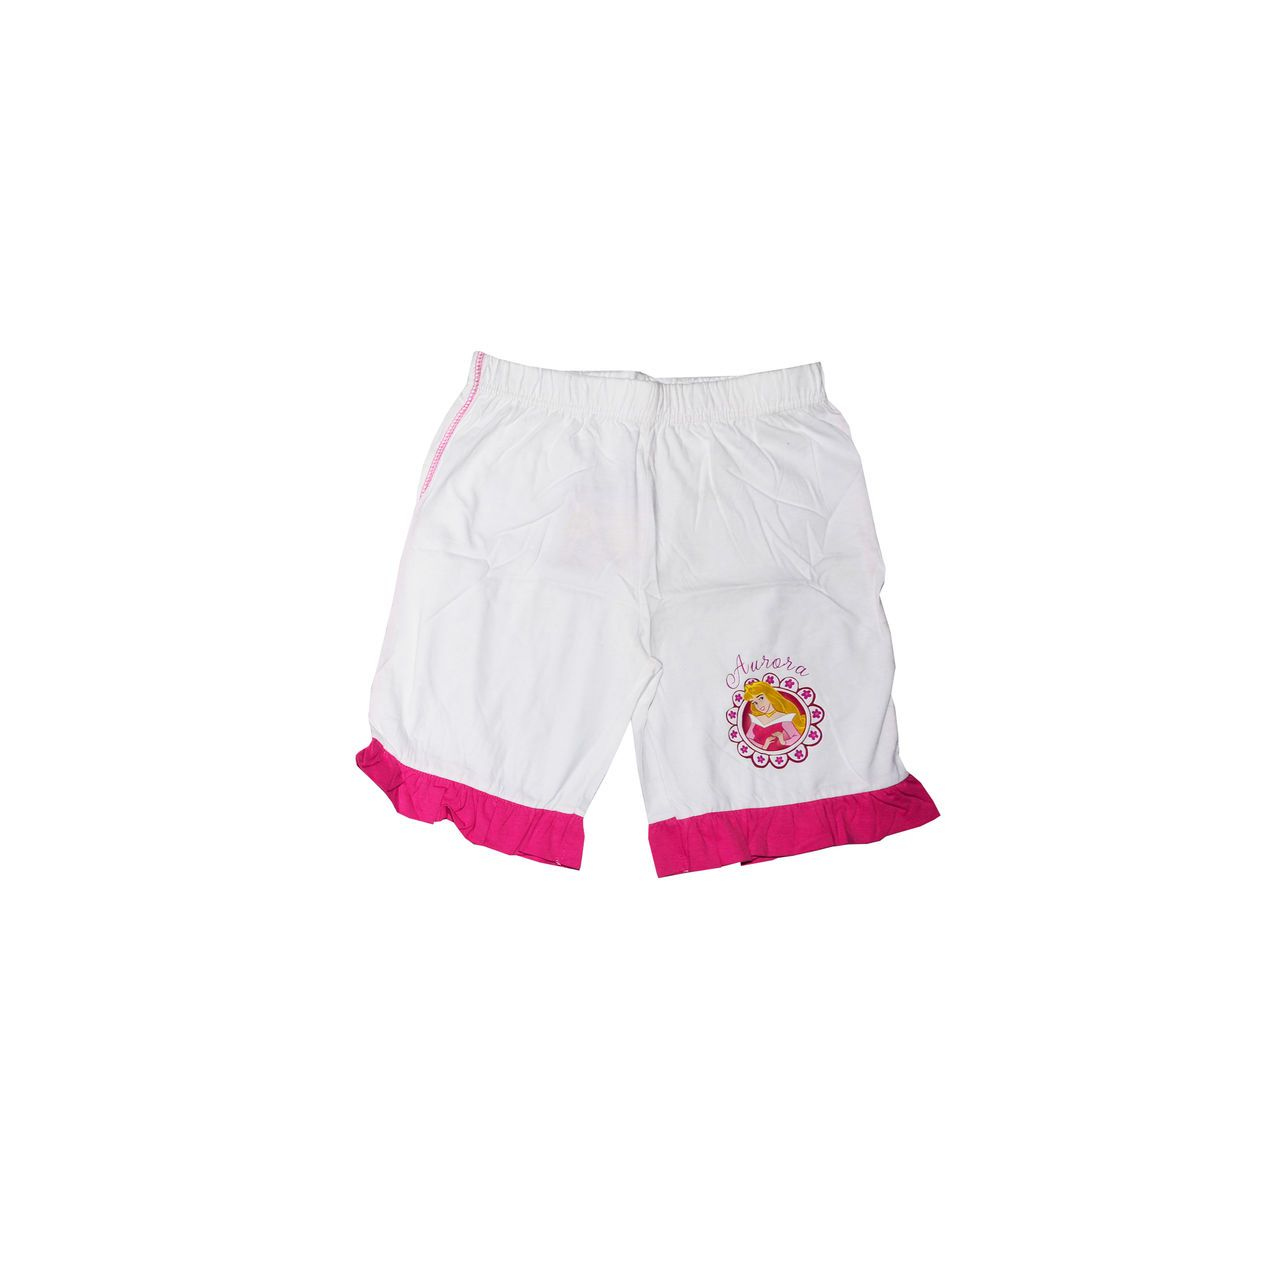 Fubu Cotton Girls Shorts